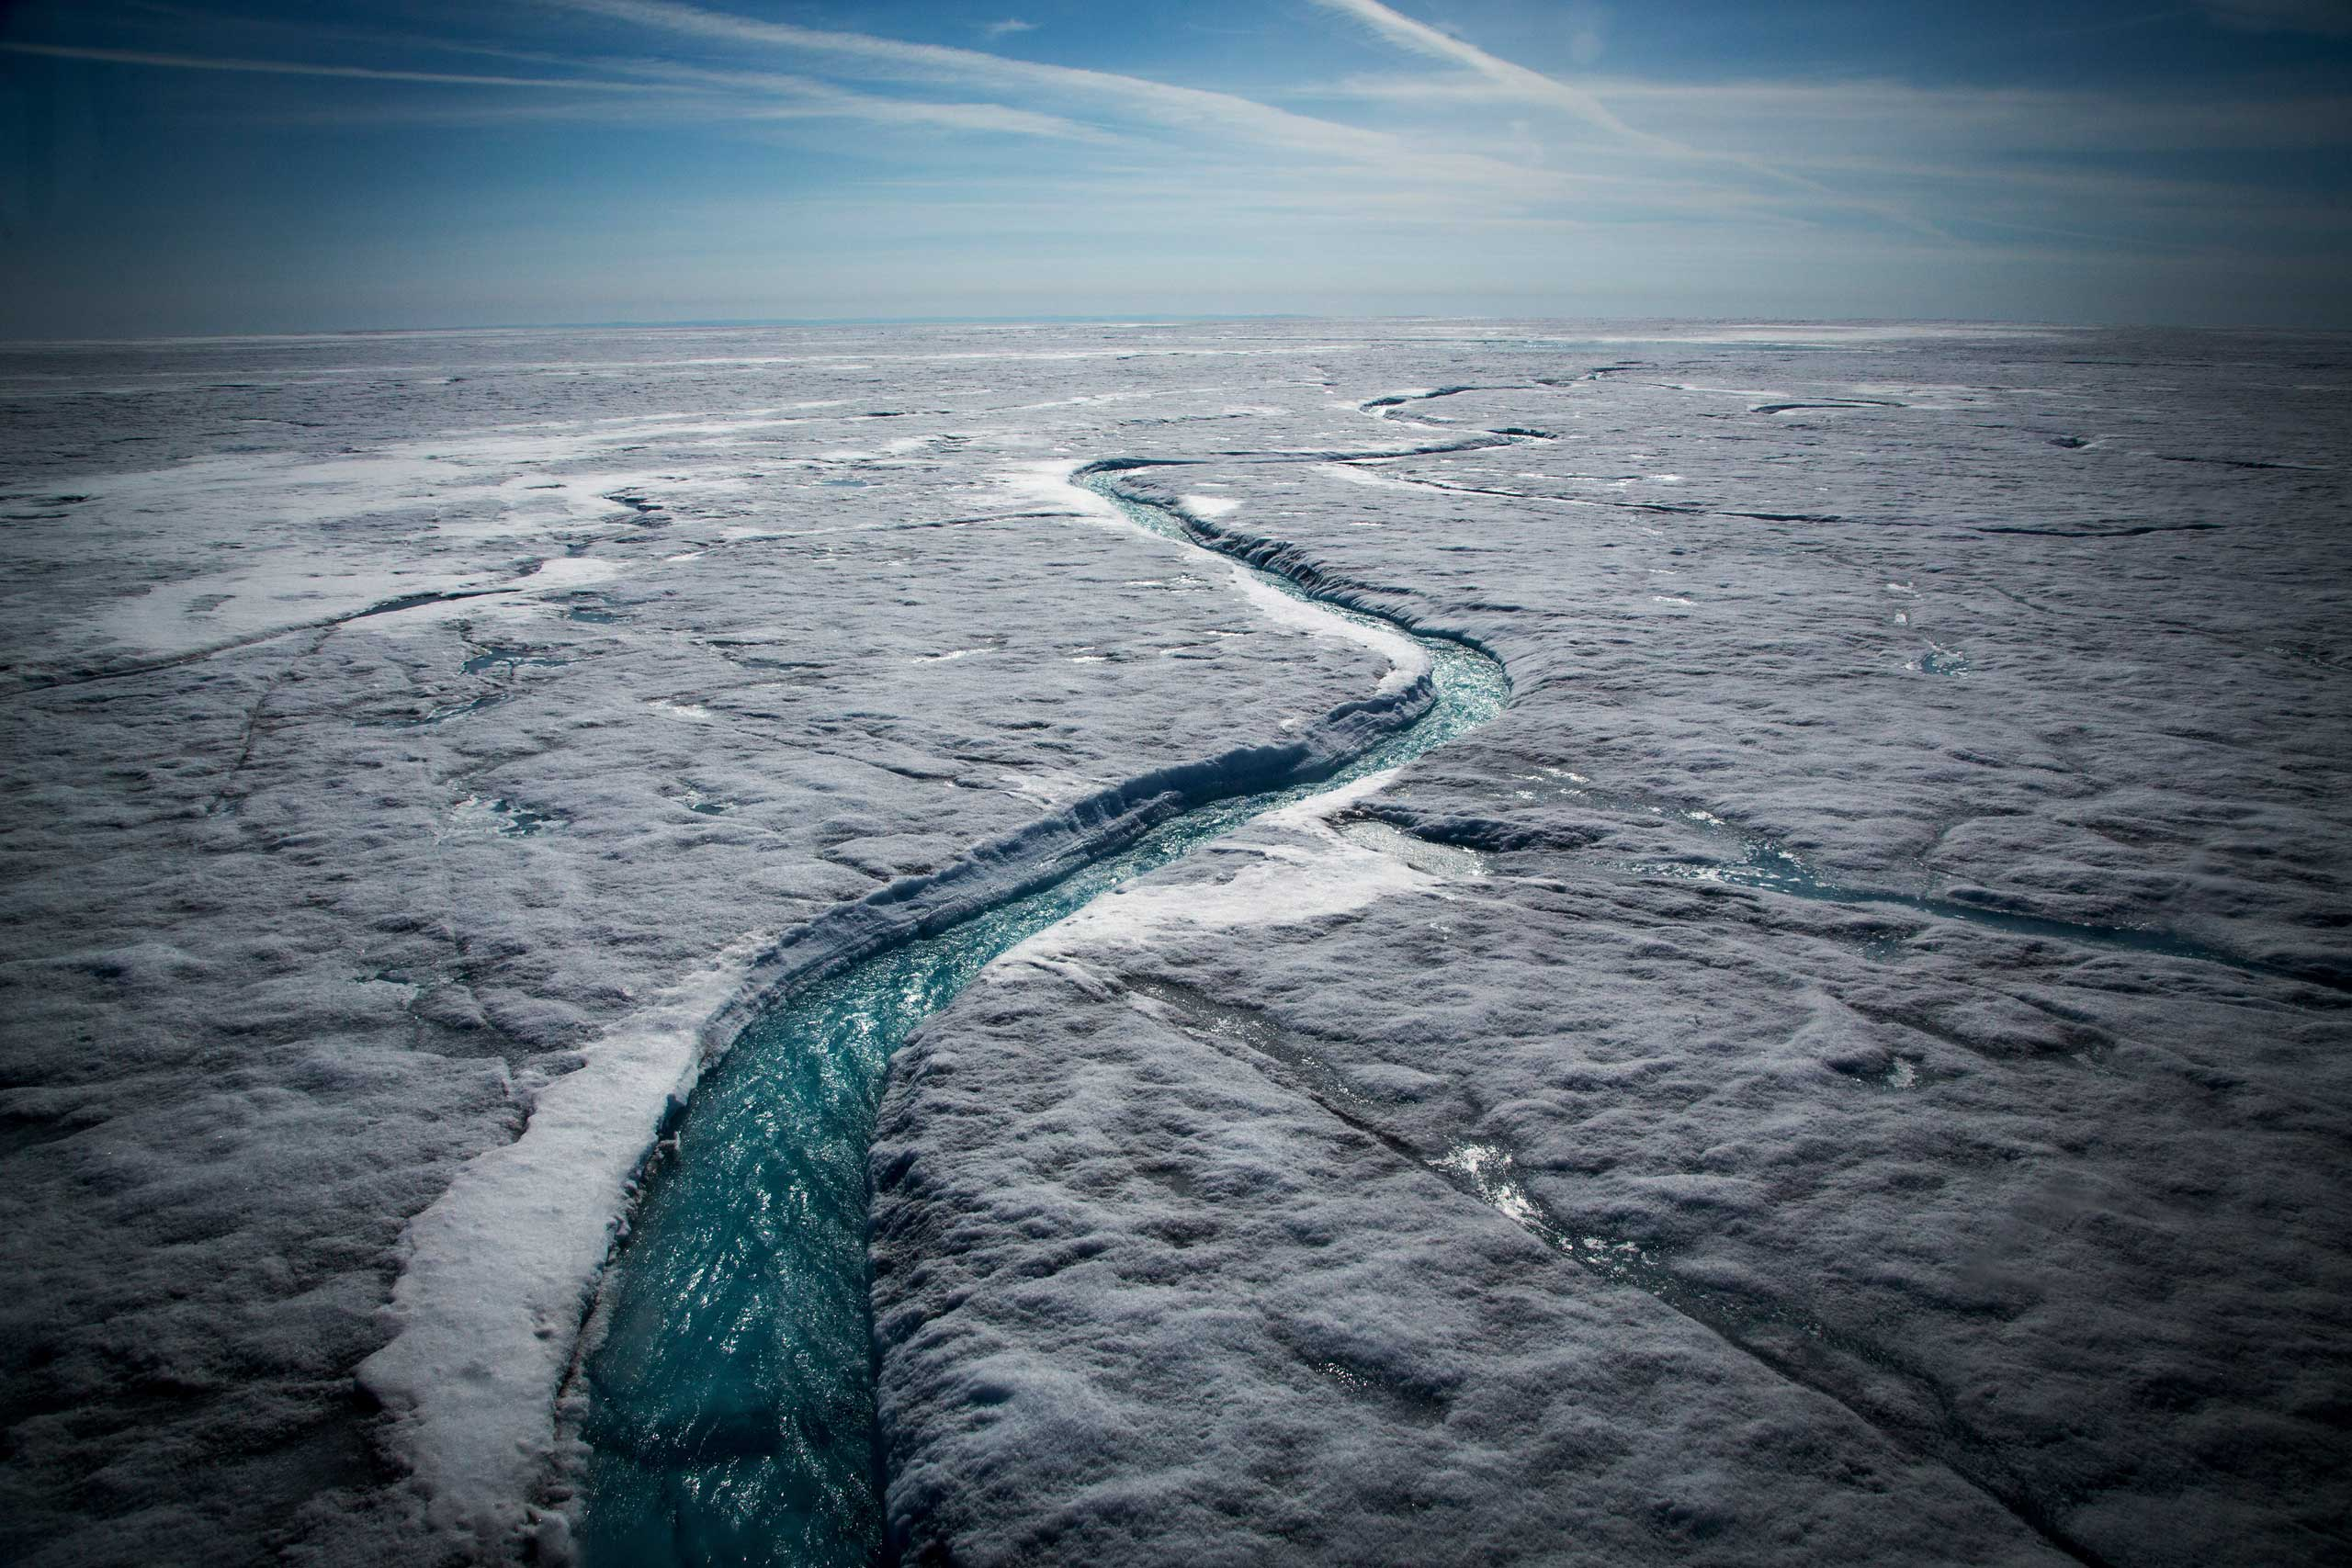 The New York Times:  Greenland Is Melting AwayMeltwater flows along a supraglacial river on the Greenland ice sheet, July 19, 2015.